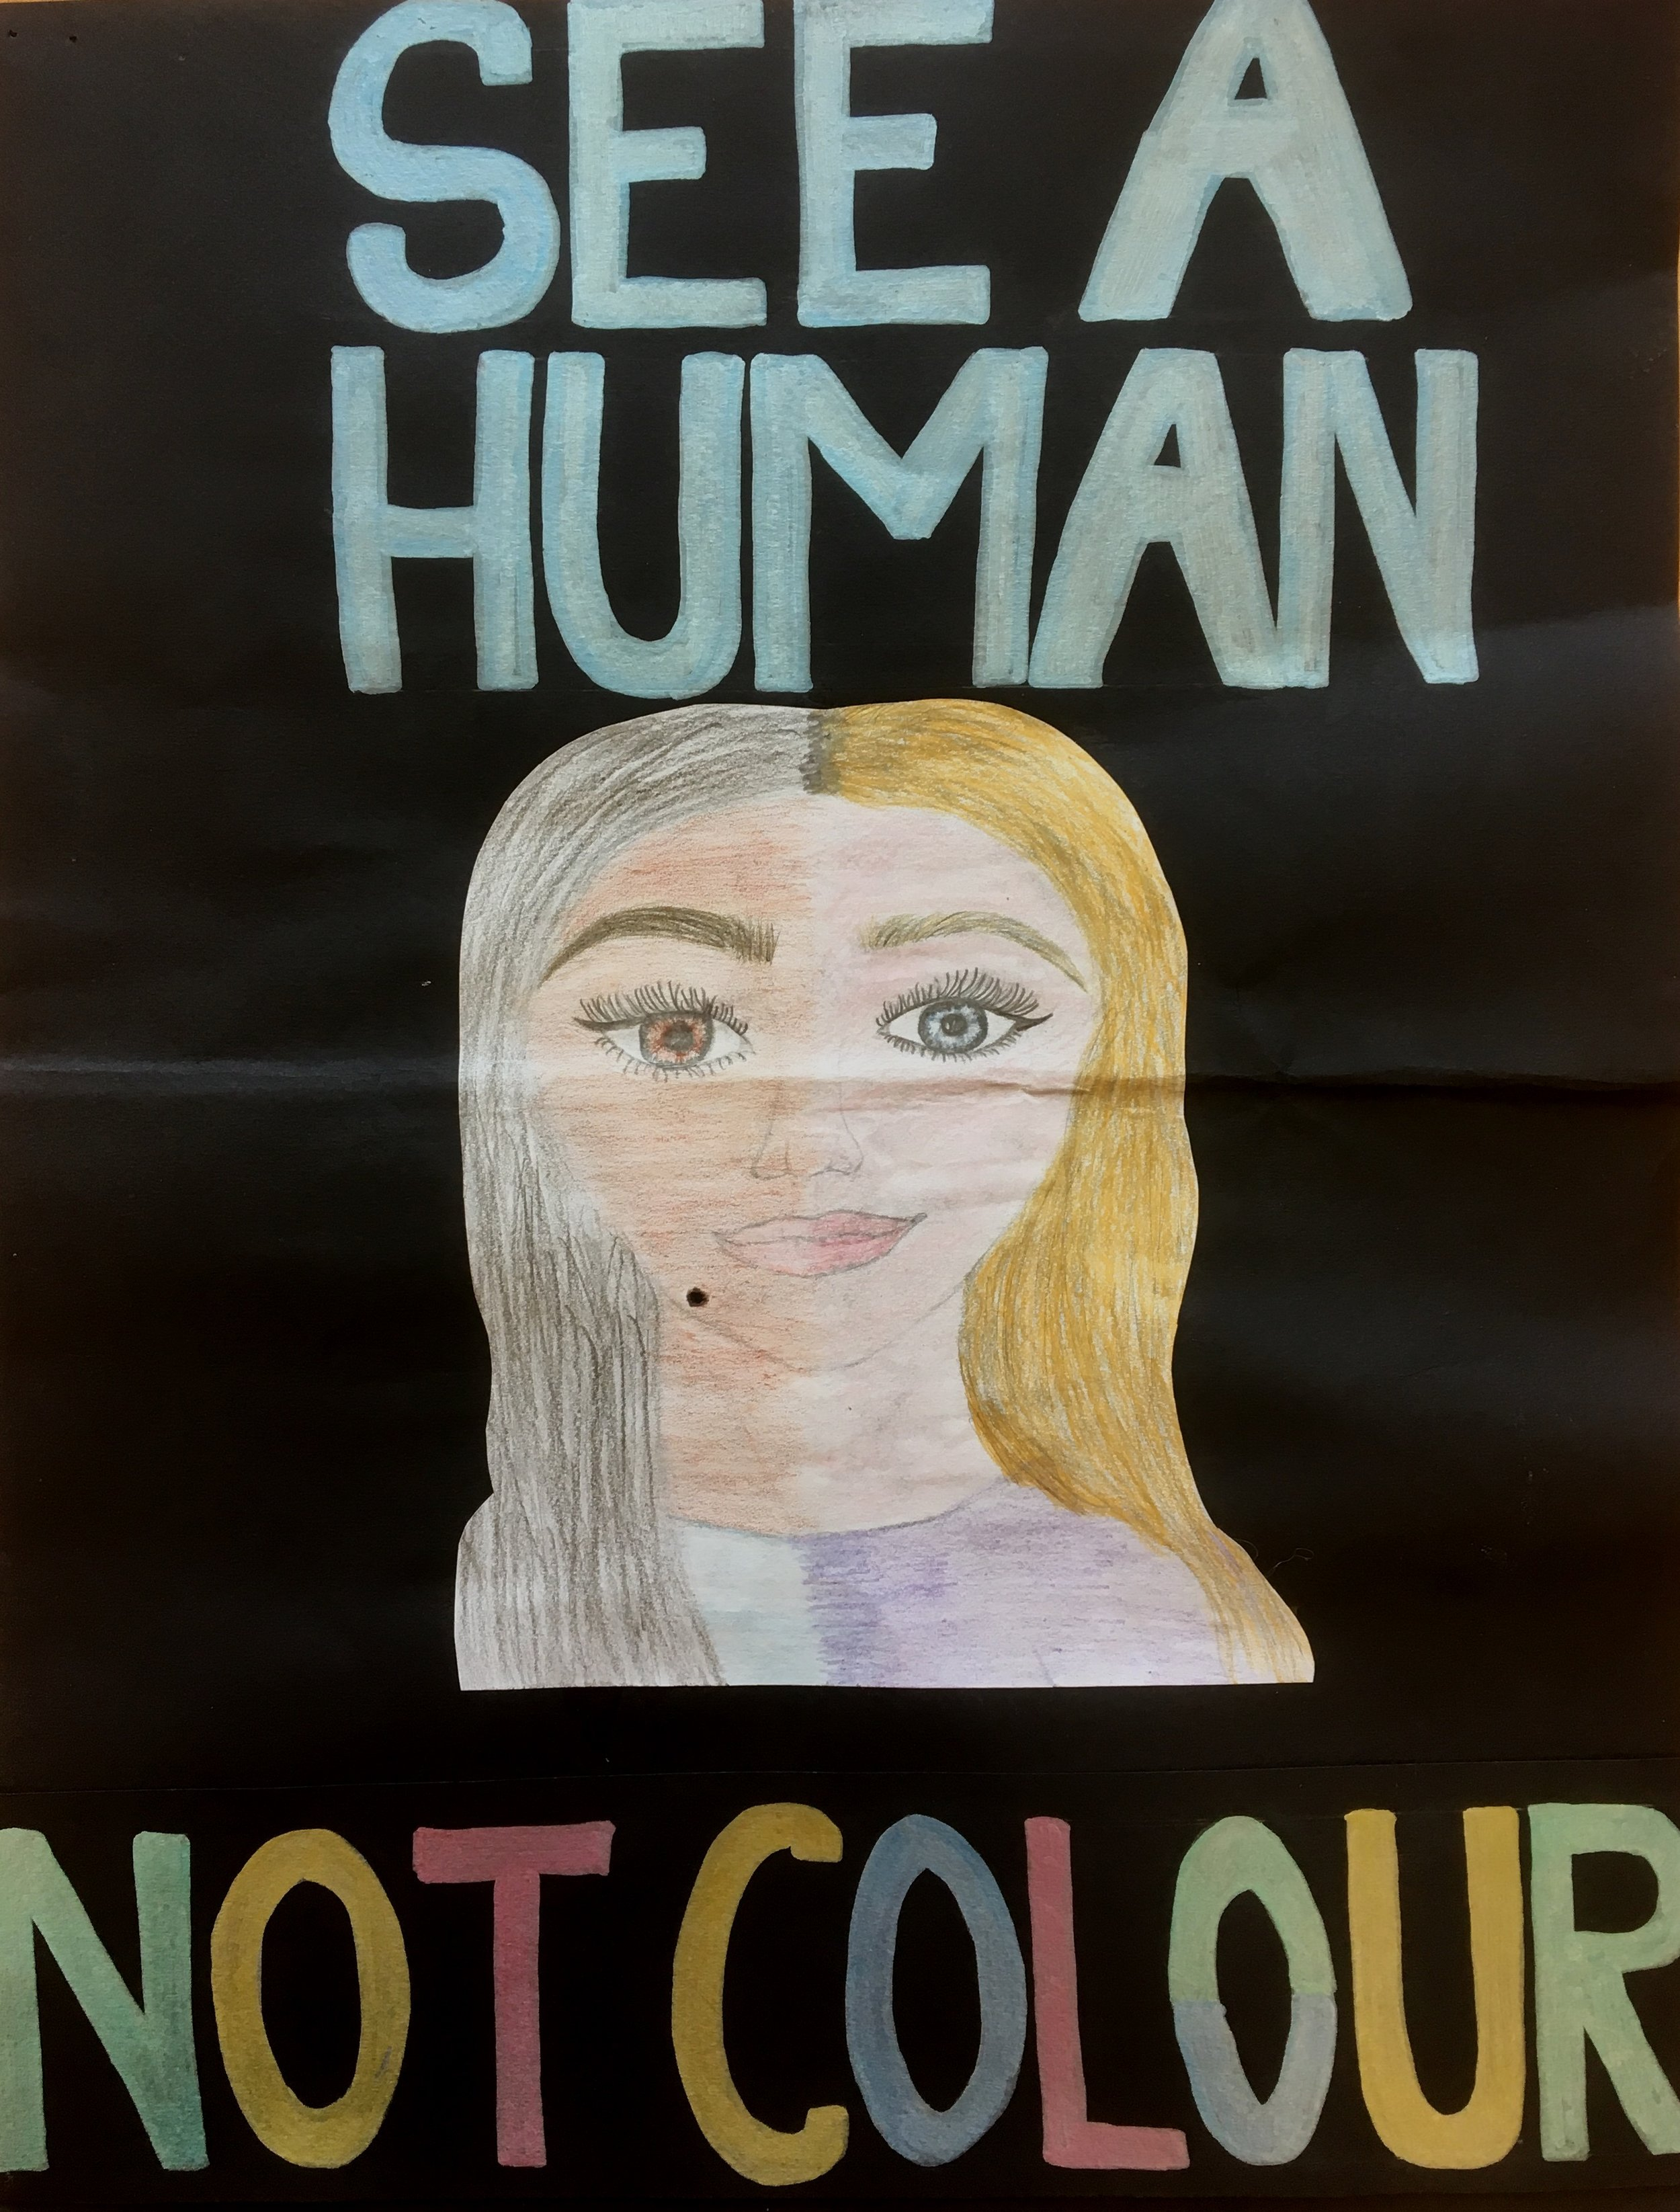 Phoebe Pritchard - Newport High School - Poster Design Secondary Education Winner.jpg